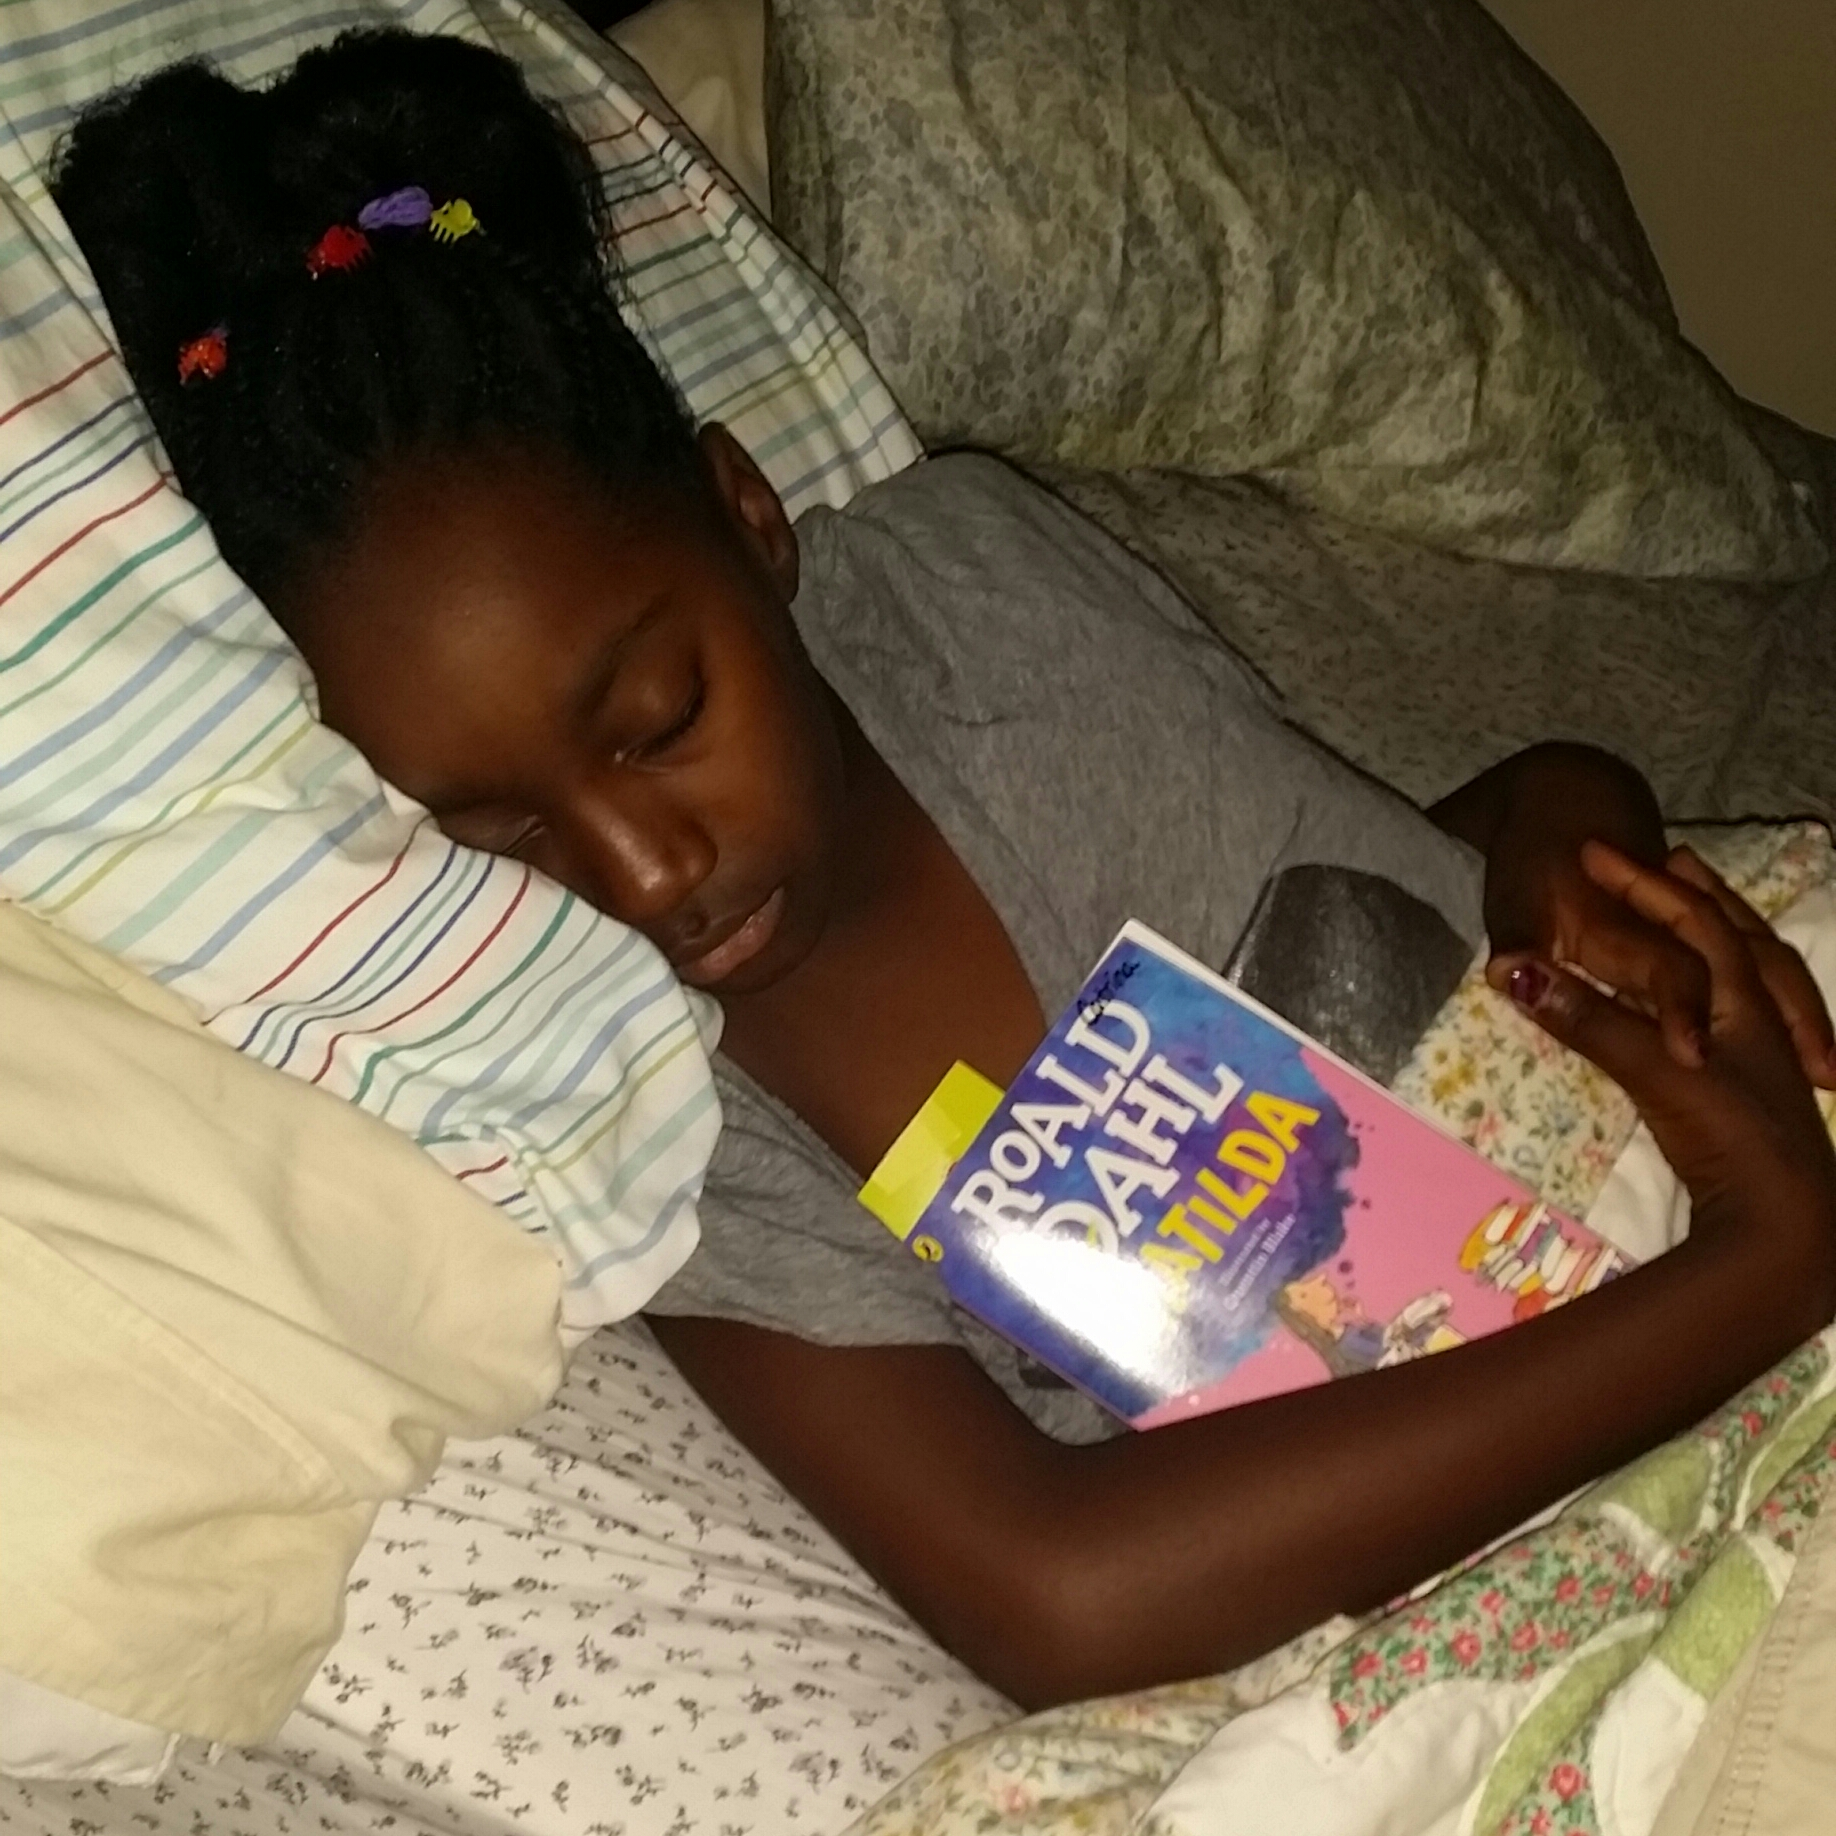 She read her book until she fell asleep!